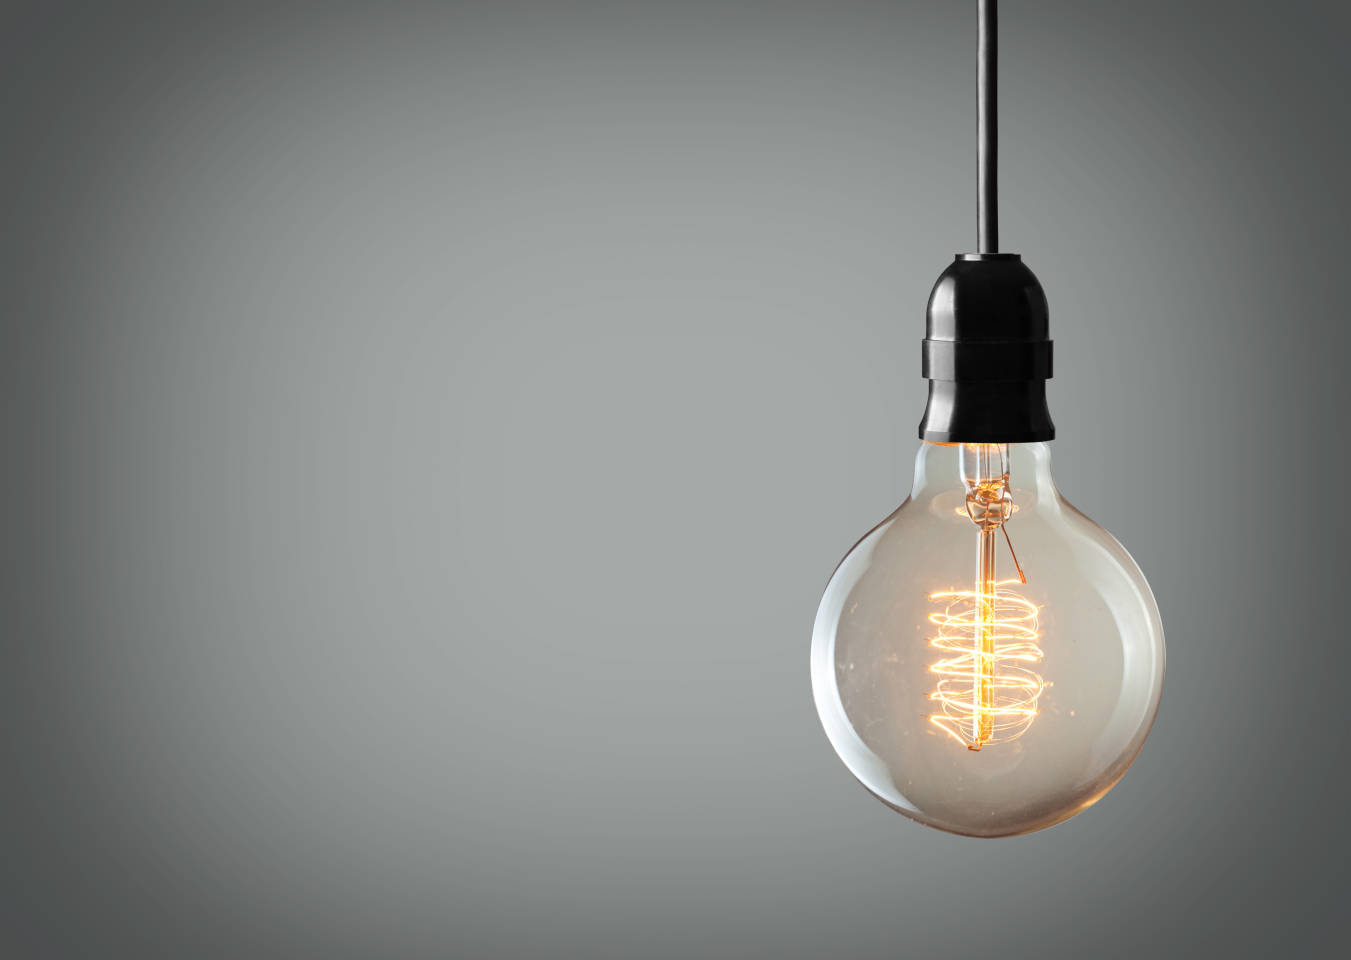 single lightbulb hanging in front of blank wall